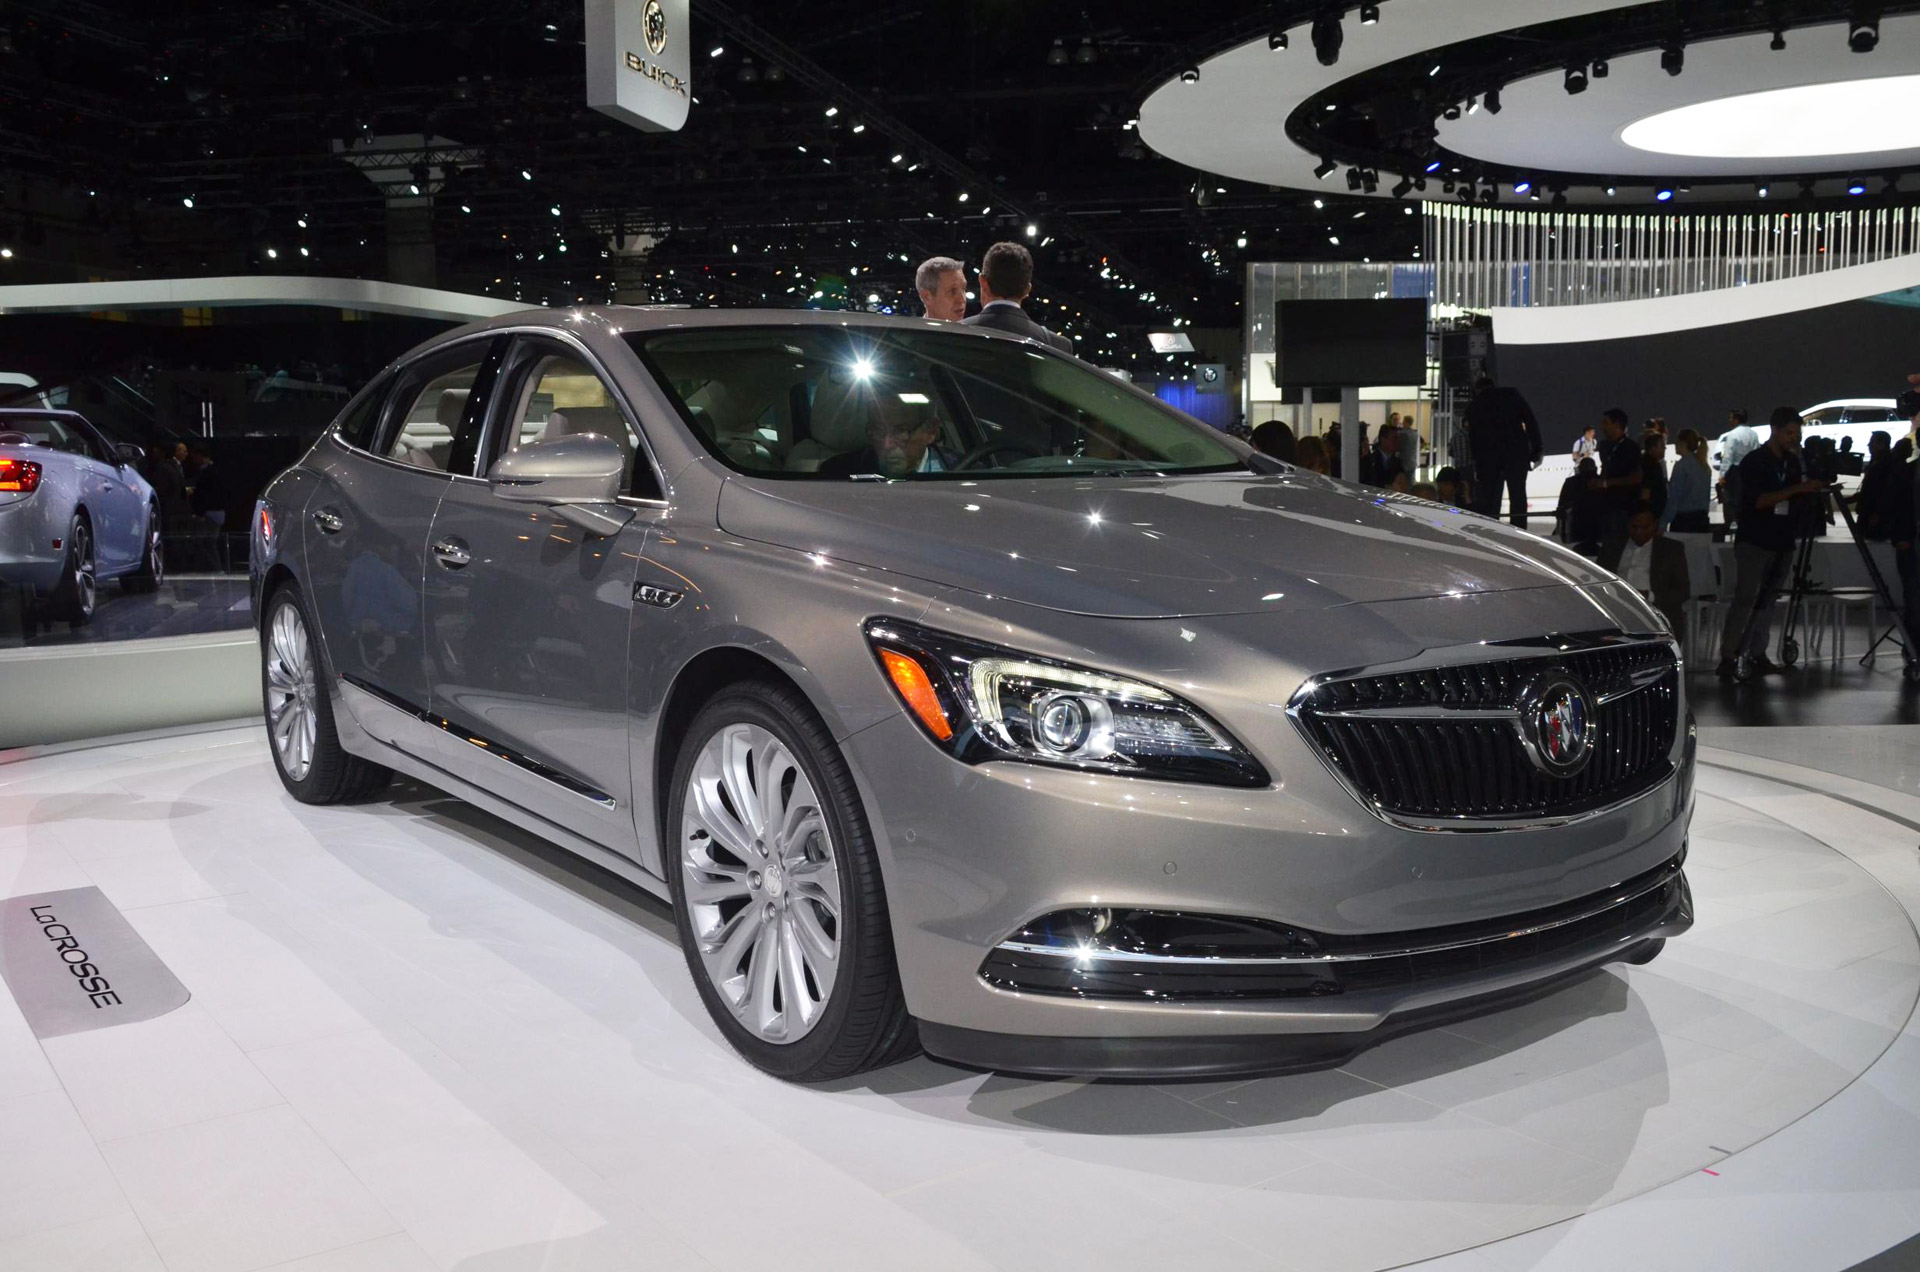 2017 Buick Lacrosse Gets Avenir Inspired Styling Lightweight Construction